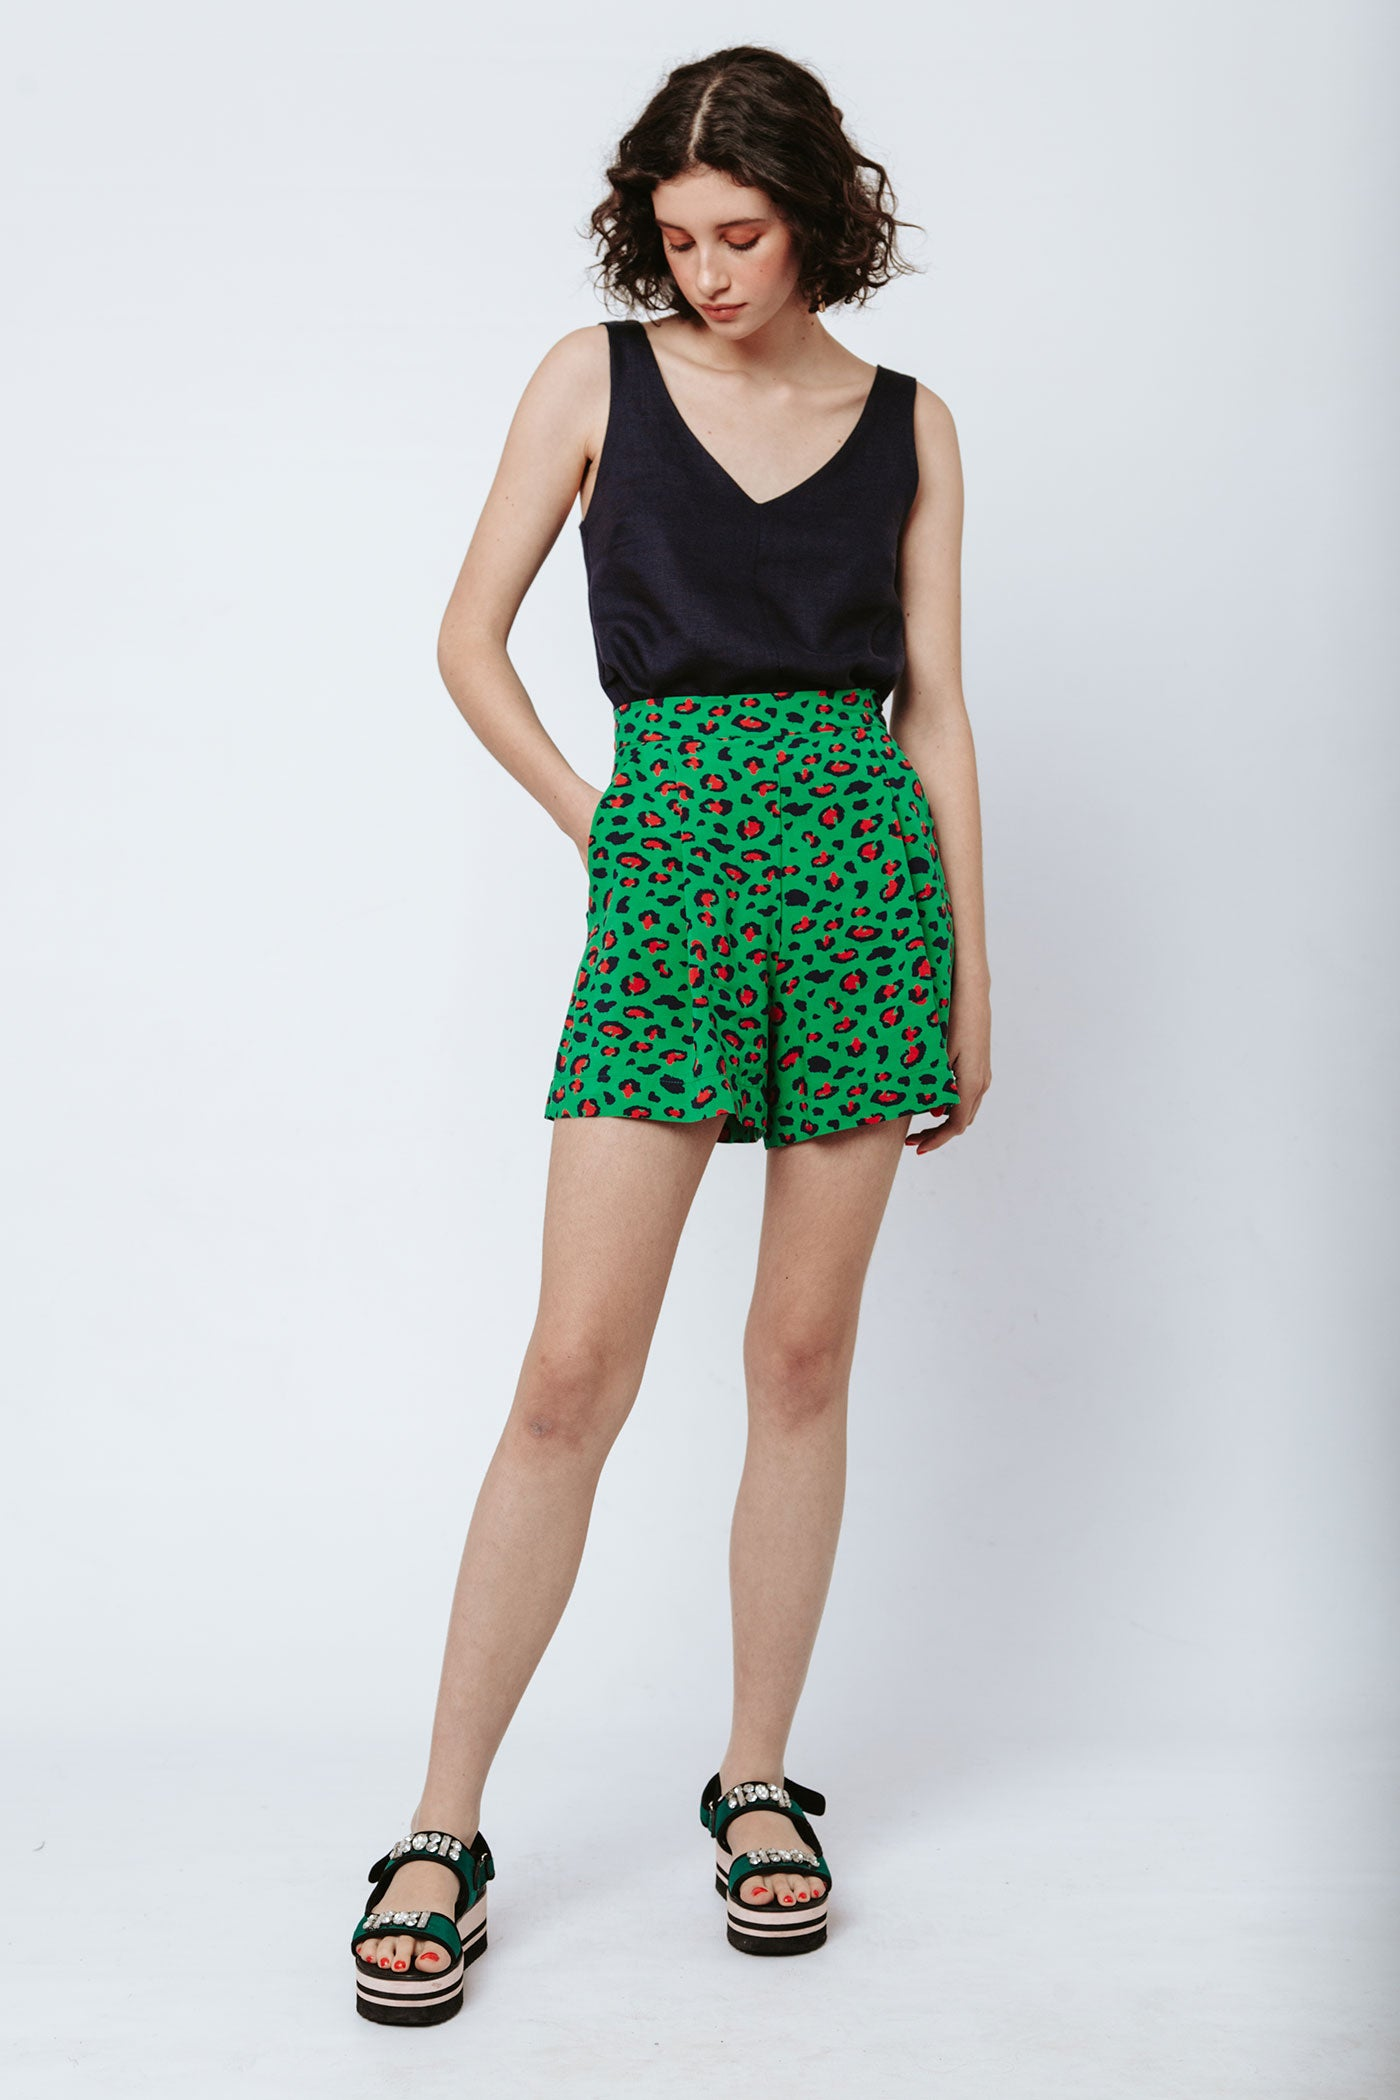 Gardening Shorts - Green Leopard (sizes available: 30 & 36)